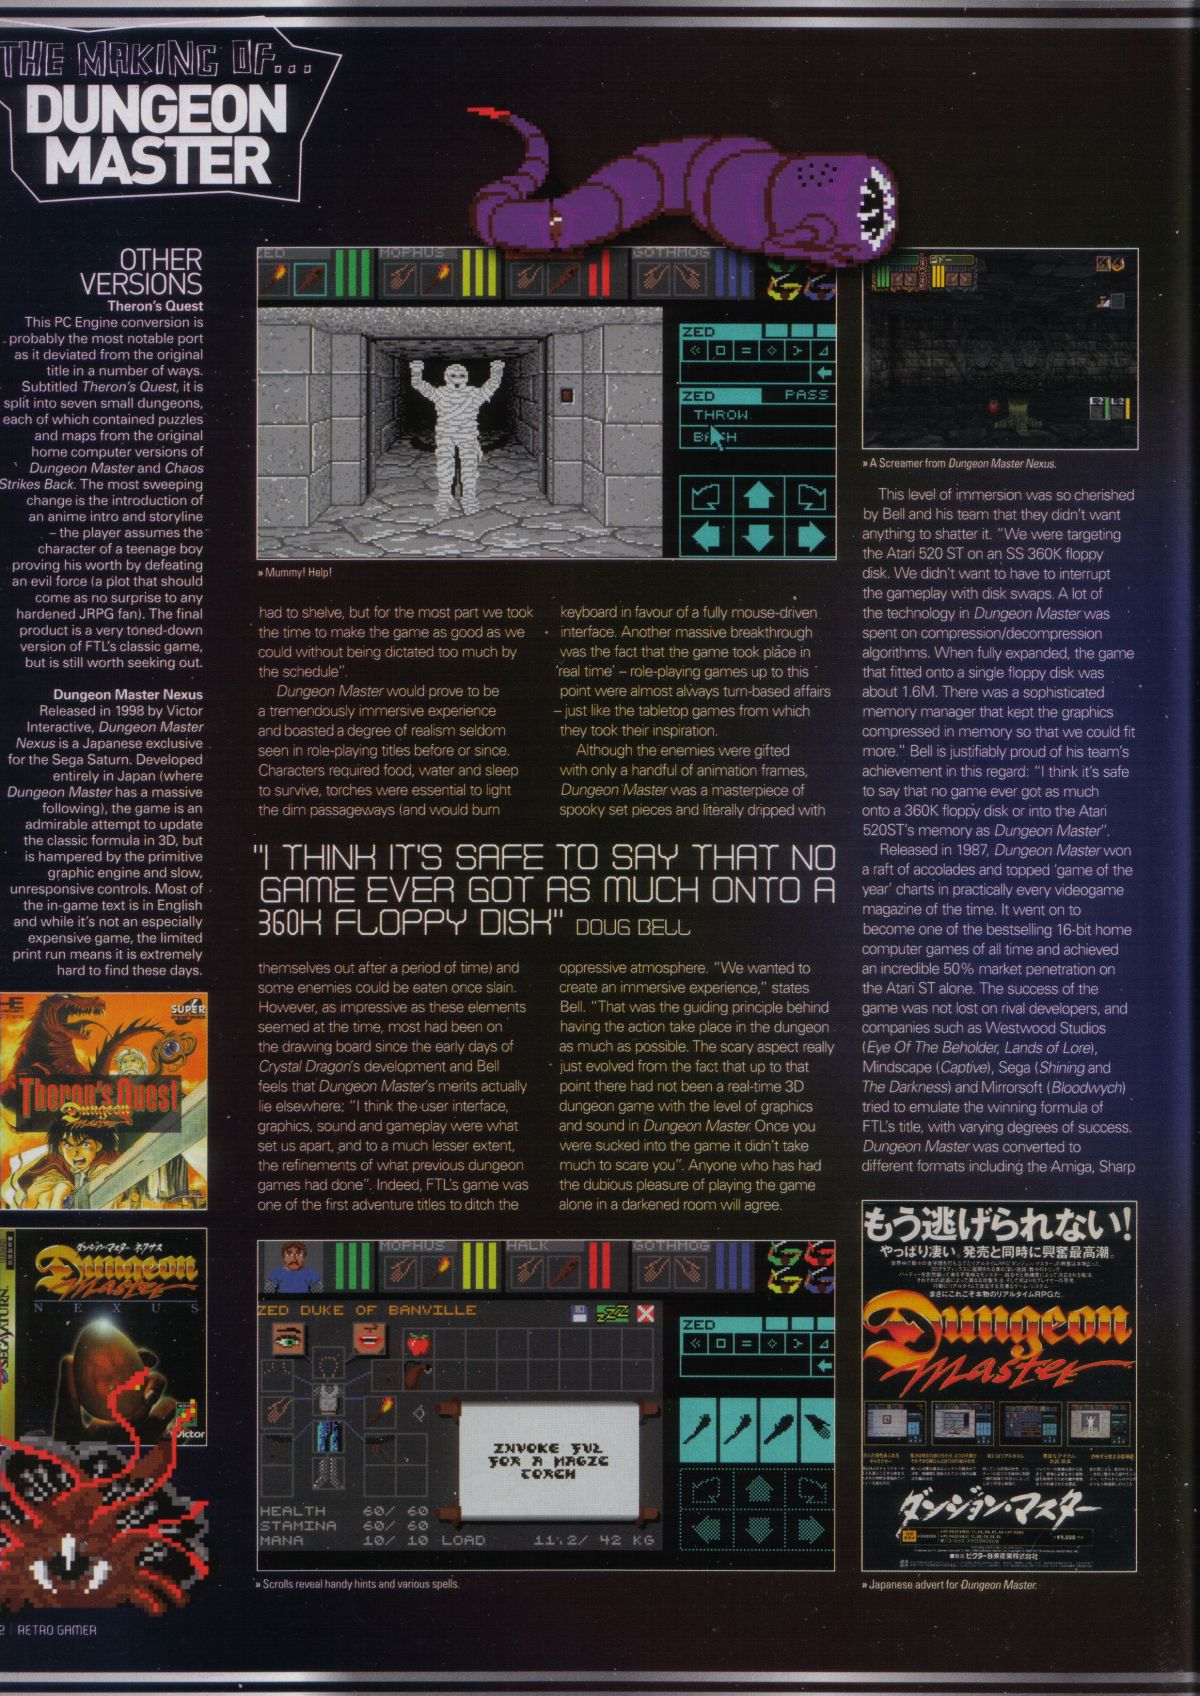 An article titled 'The Making of... Dungeon Master' published in British magazine 'Retro Gamer', Issue #34, February 2007, Pages 32